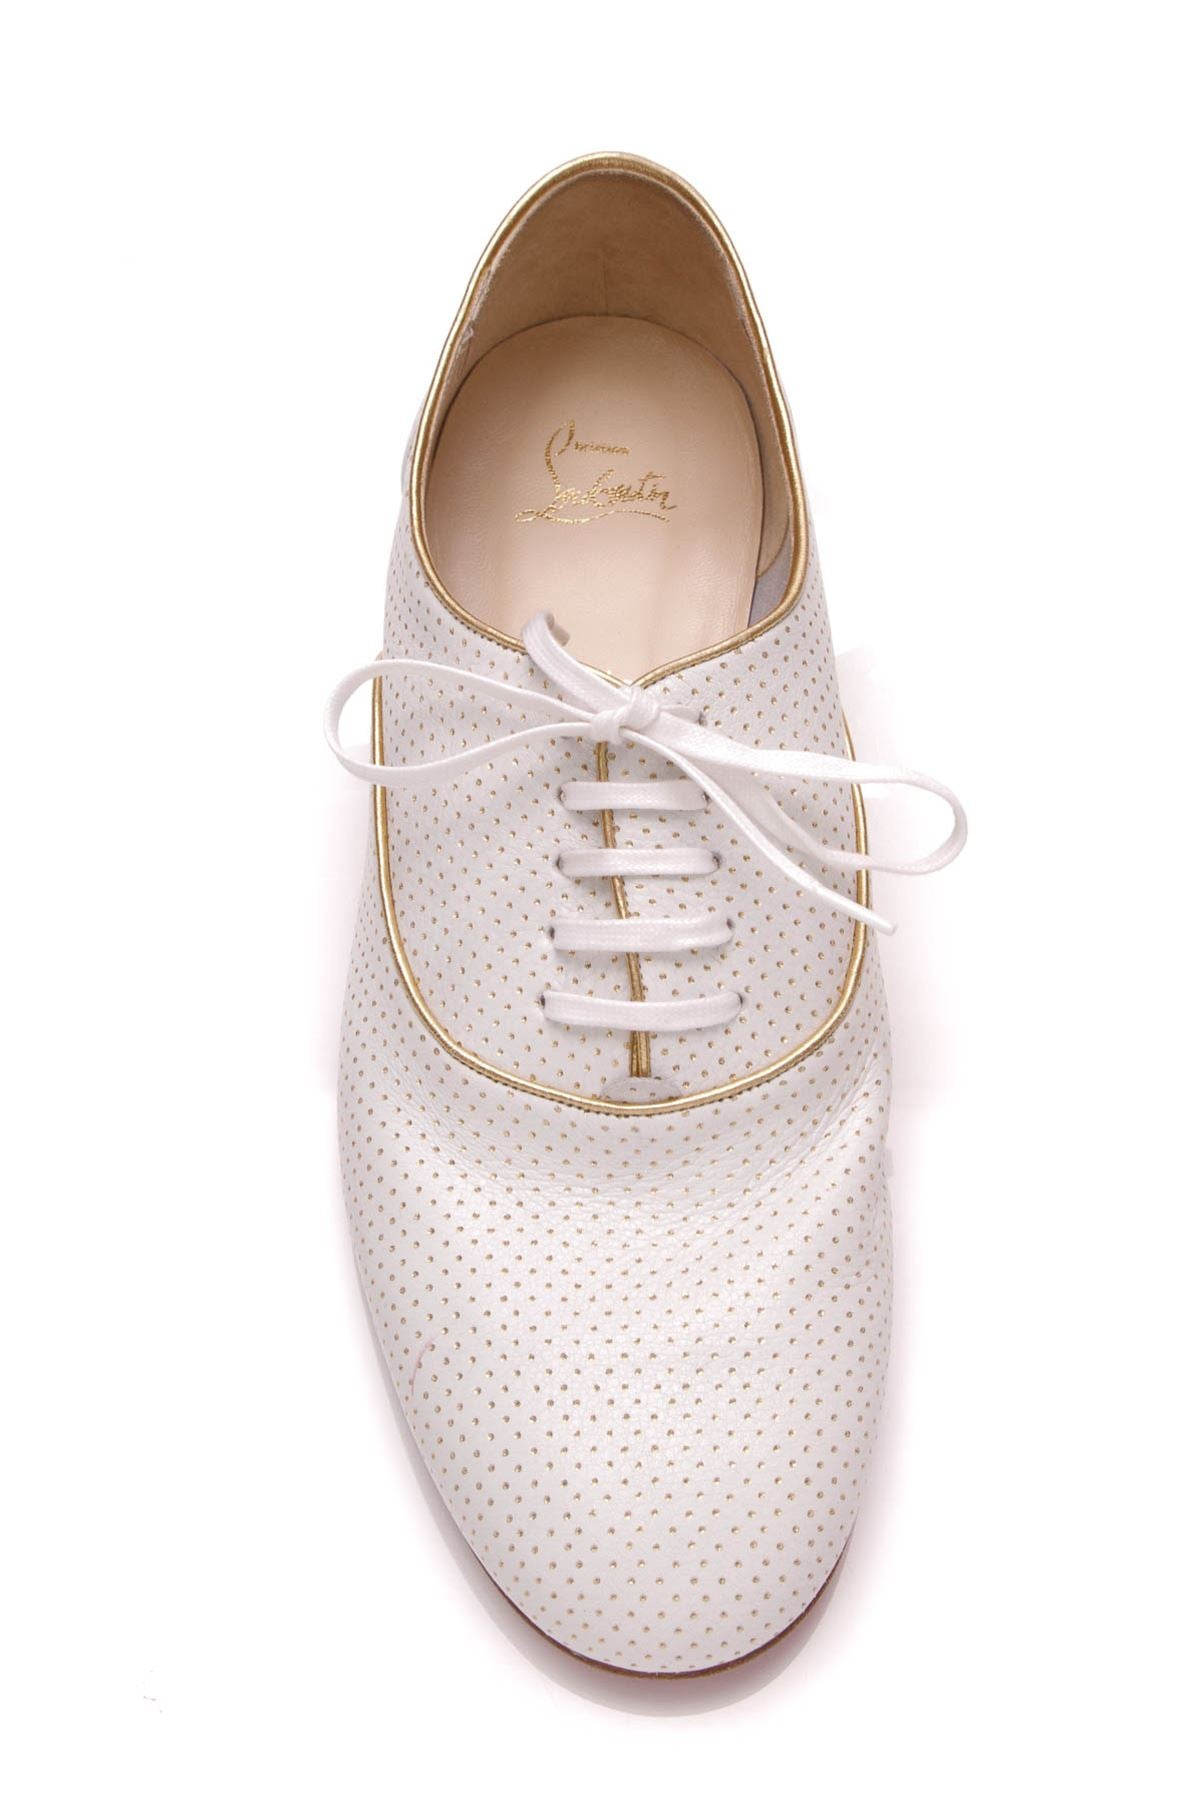 0e5c8ef3988c Alfred Men s Dress Shoes - White Gold Size 9 – Couture USA